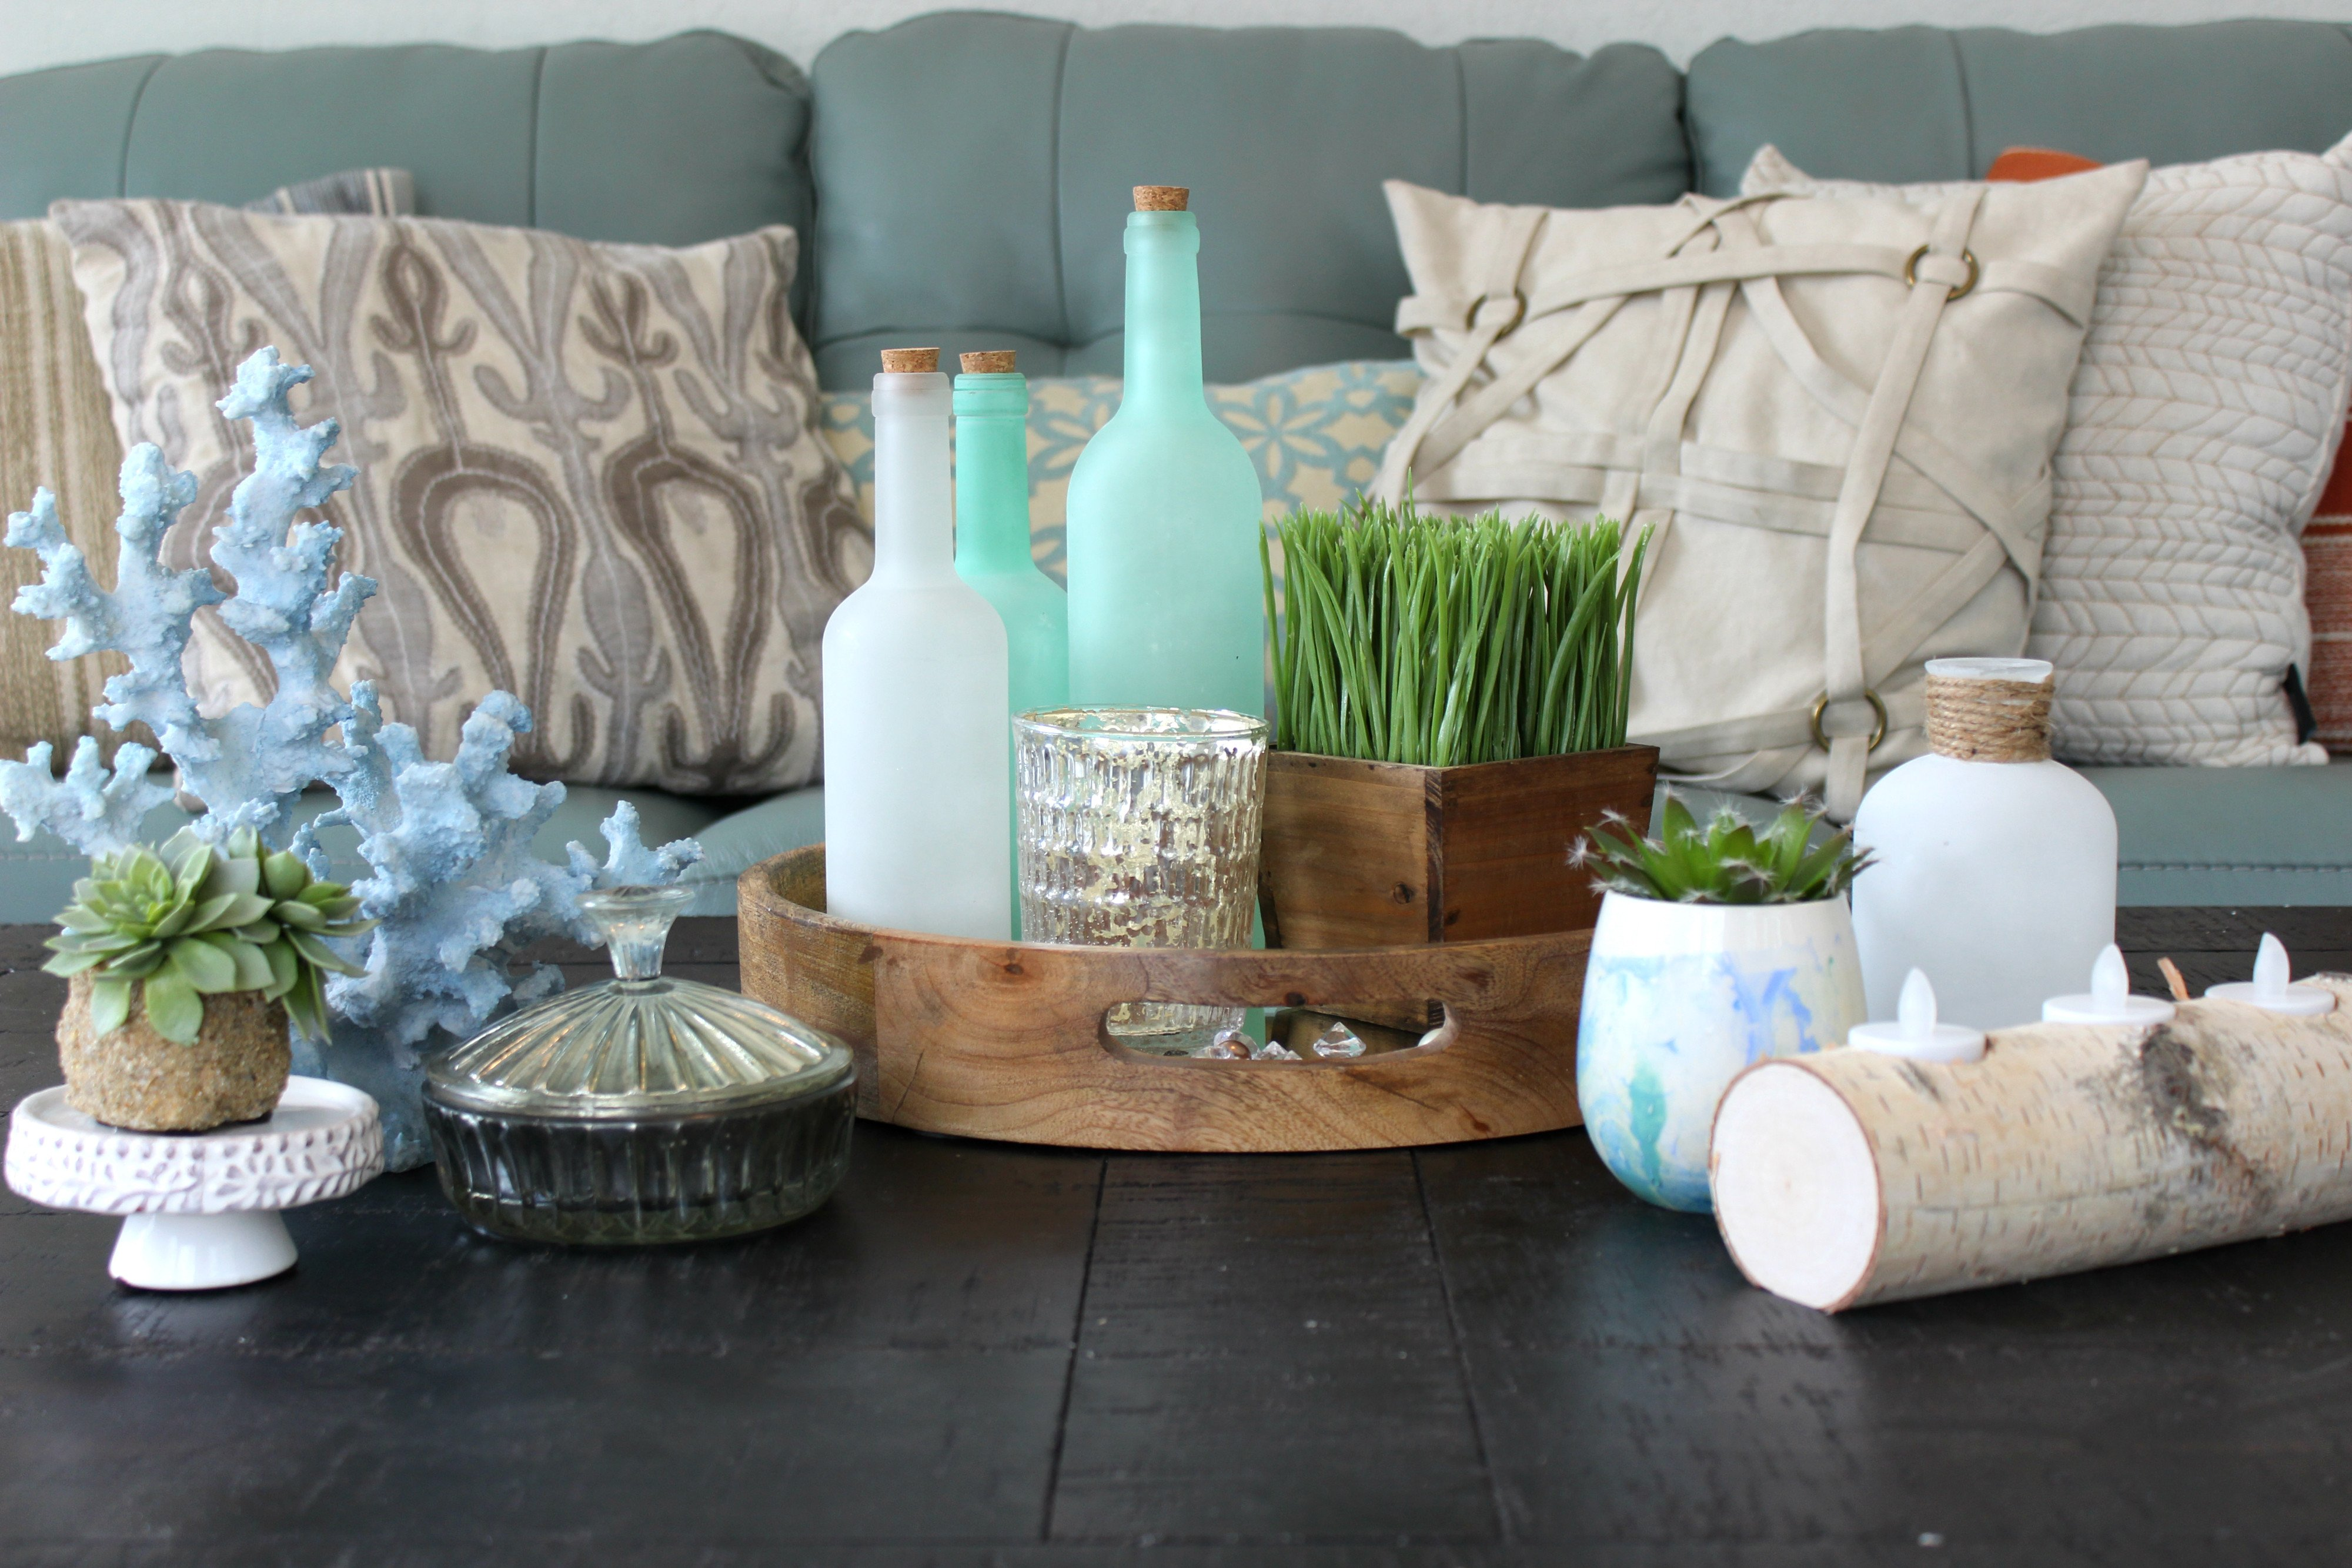 Living Room Center Table Decor Unique Coffee Table Decorating Ideas to Match Every Style